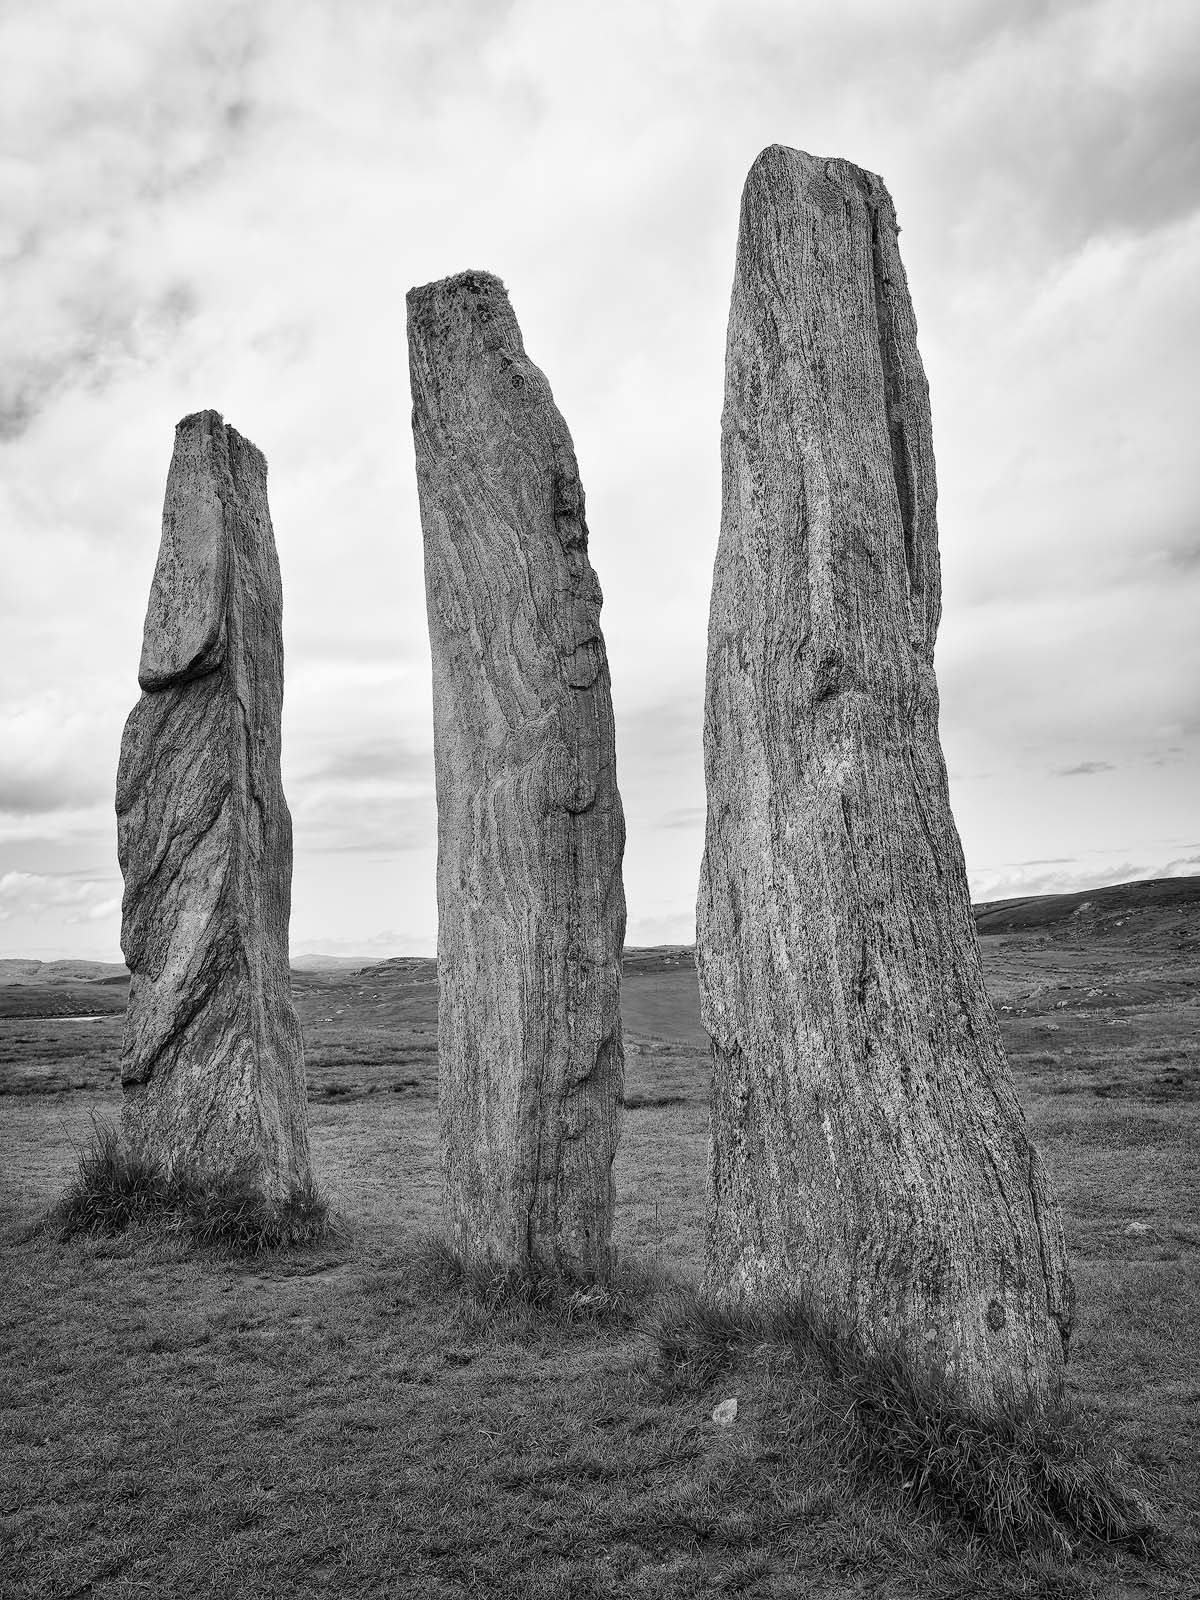 WORLD REGIONS & COUNTRIES, Europe, United Kingdom, Scotland, Isle of Lewis, Callanish Stones, art, fine art, sculpture, stone sculpture, environment, scenery, land, stones, stone, concepts, ritual, photo